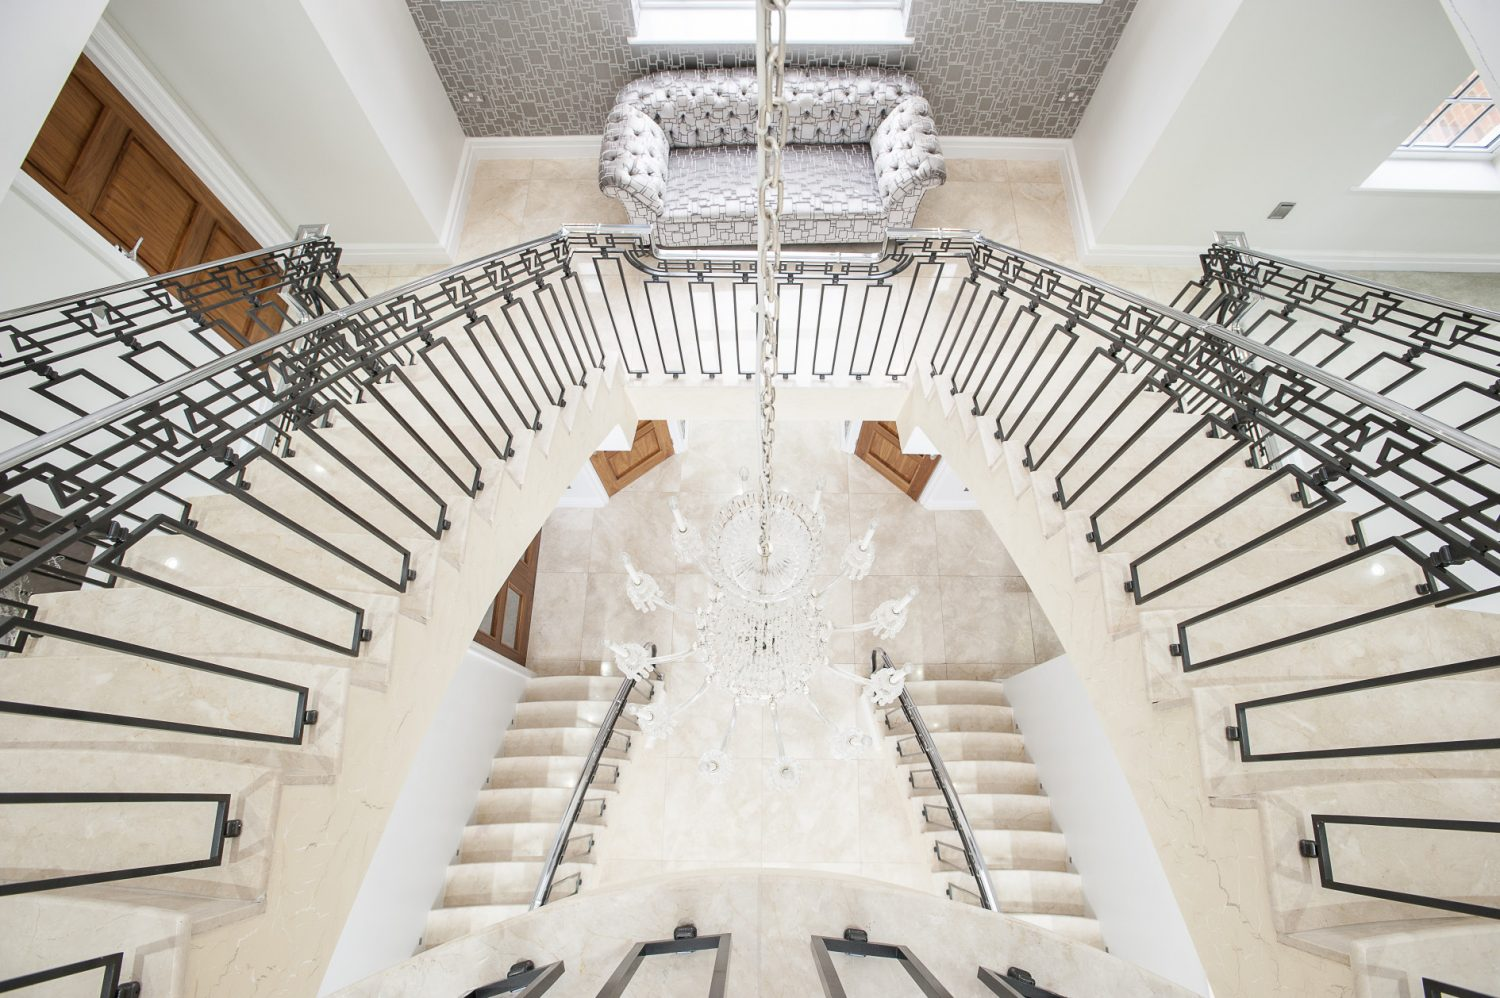 The vast and delicate horseshoe staircase sweeps up three floors creating a huge, soaring marble and crystal atrium